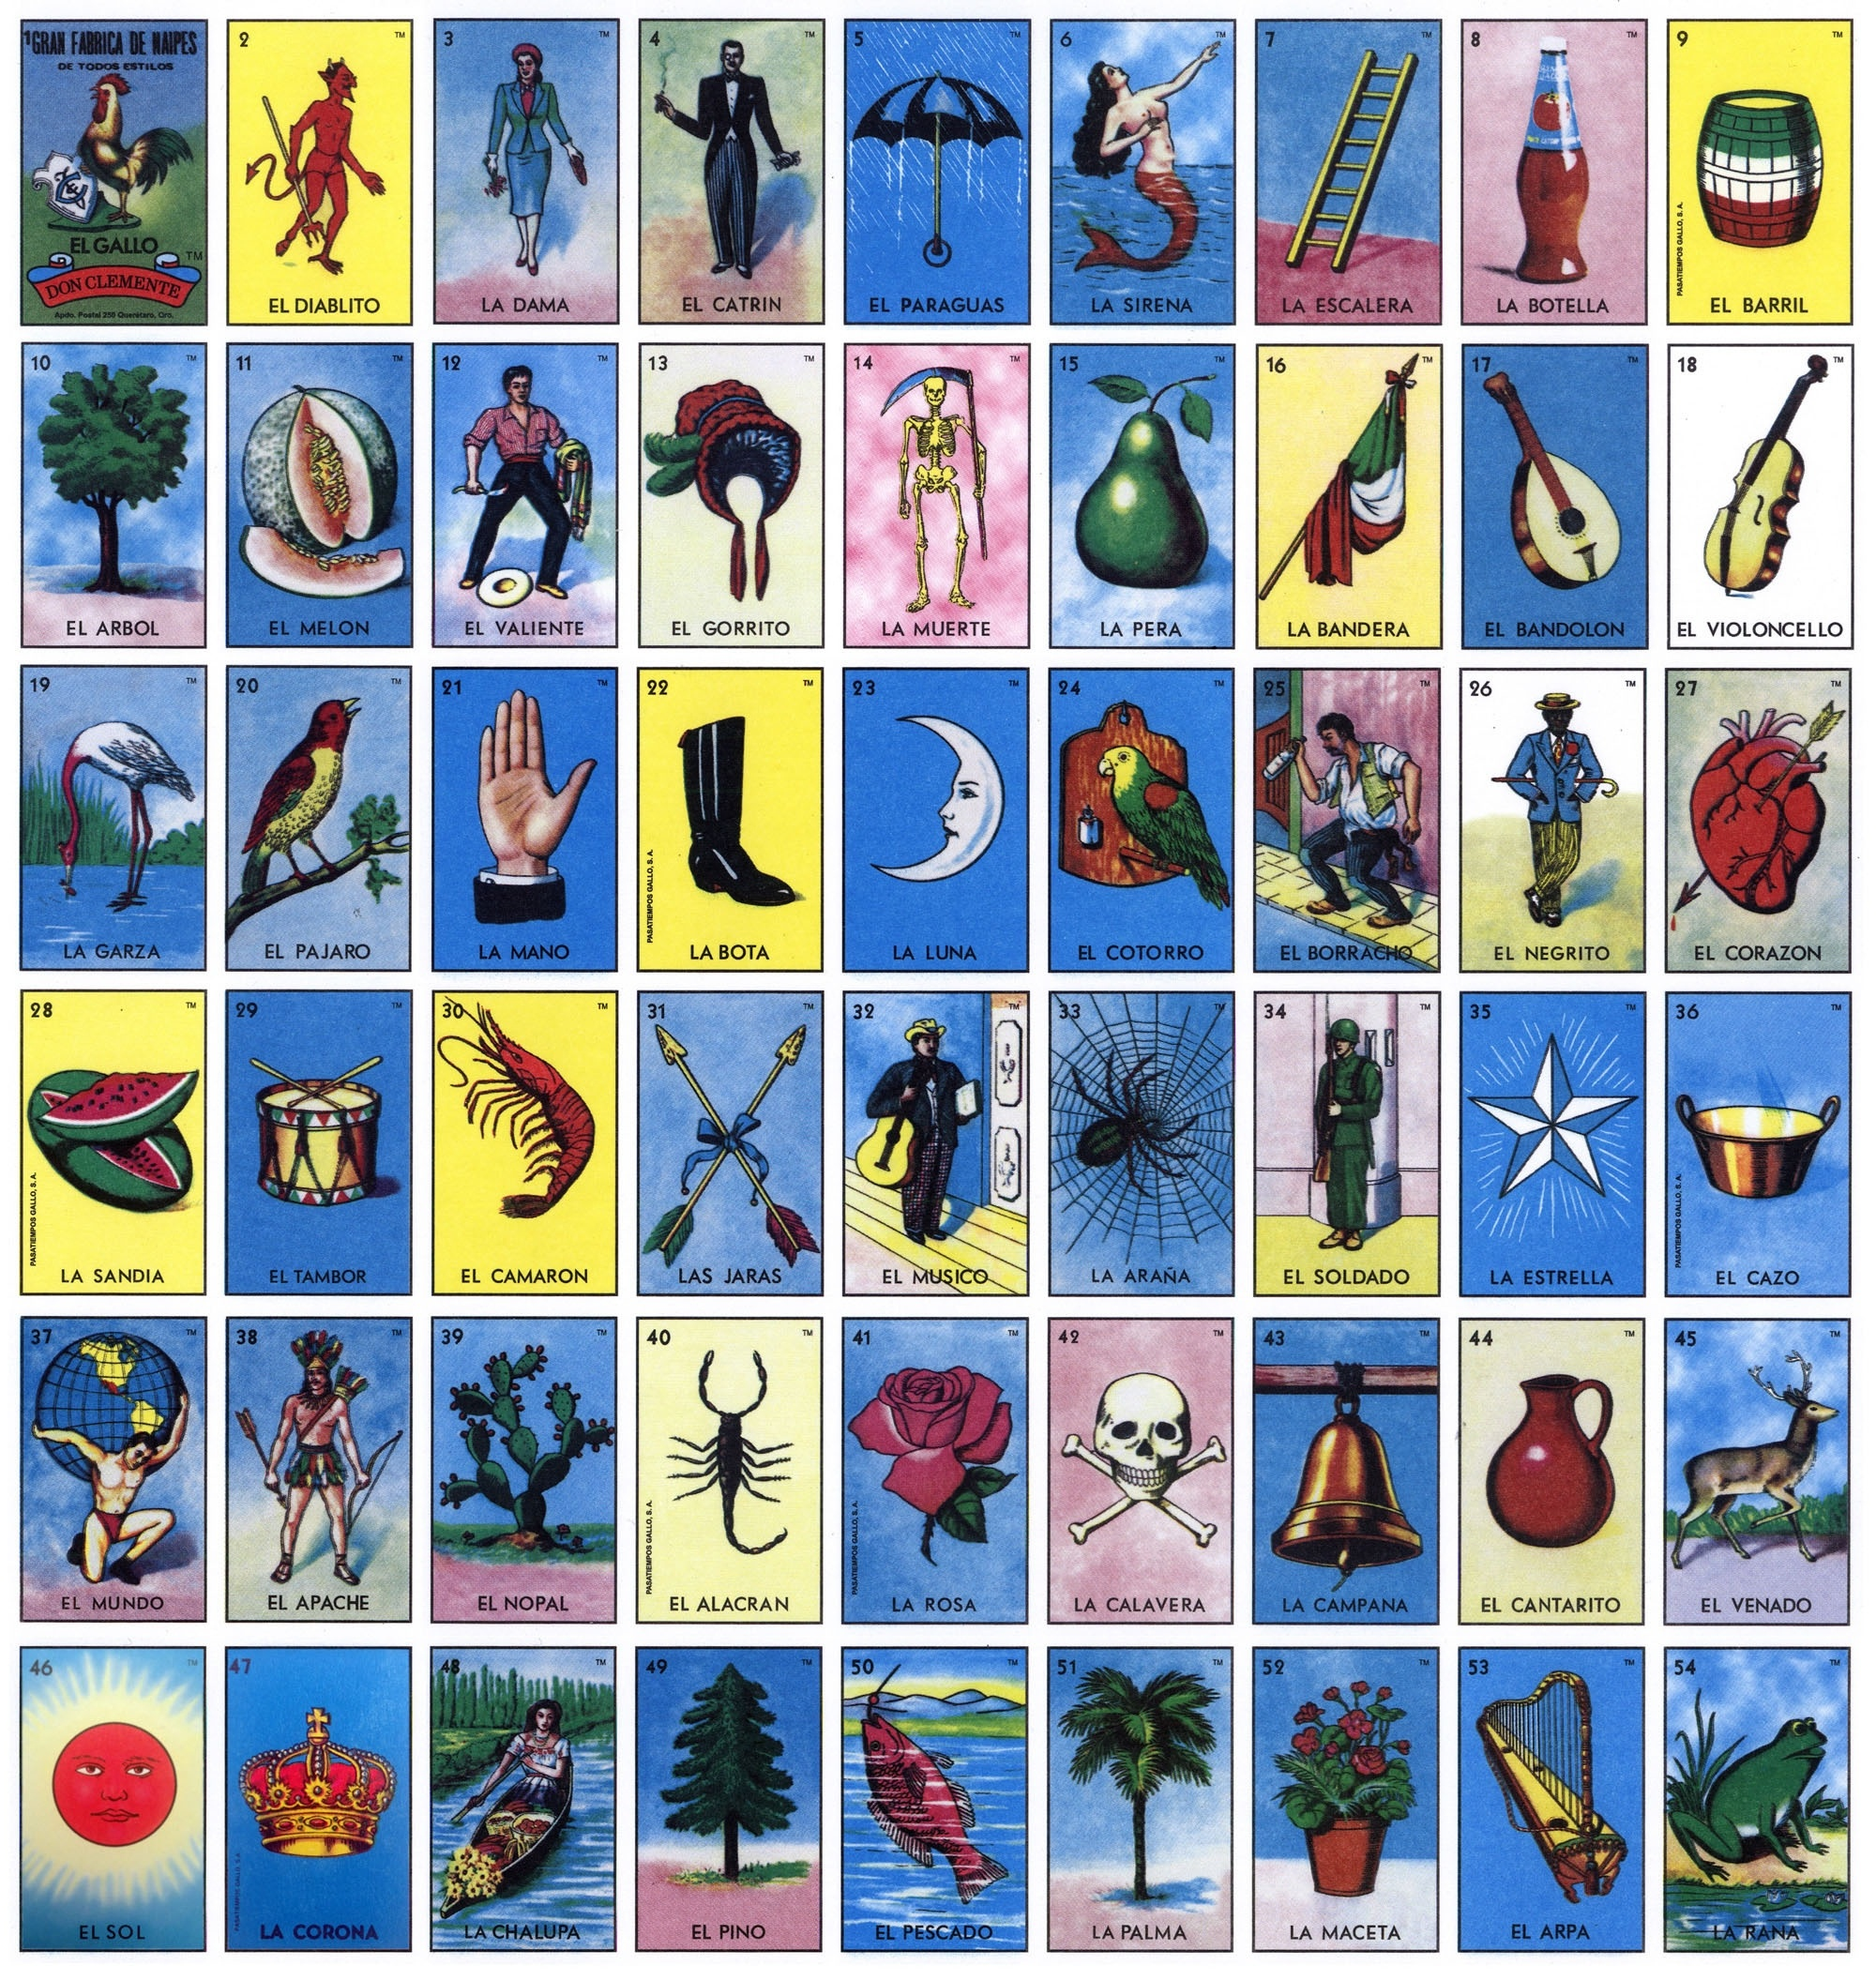 Printable Loteria Cards (89+ Images In Collection) Page 1 - Free Printable Loteria Cards